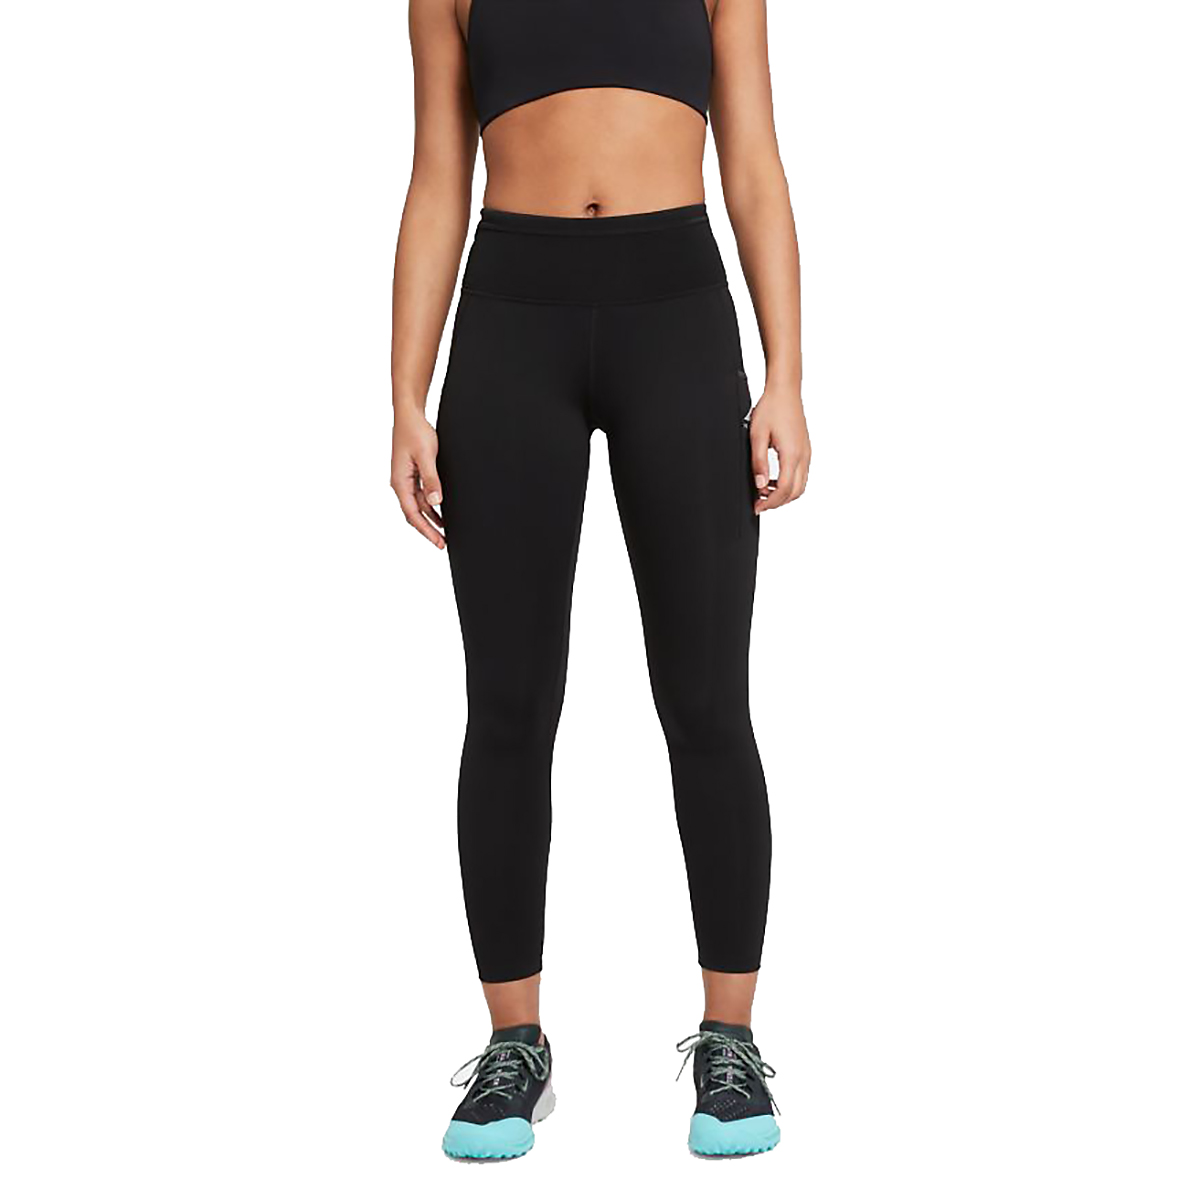 Women's Nike Epic Luxe Trail Running Tights, , large, image 1